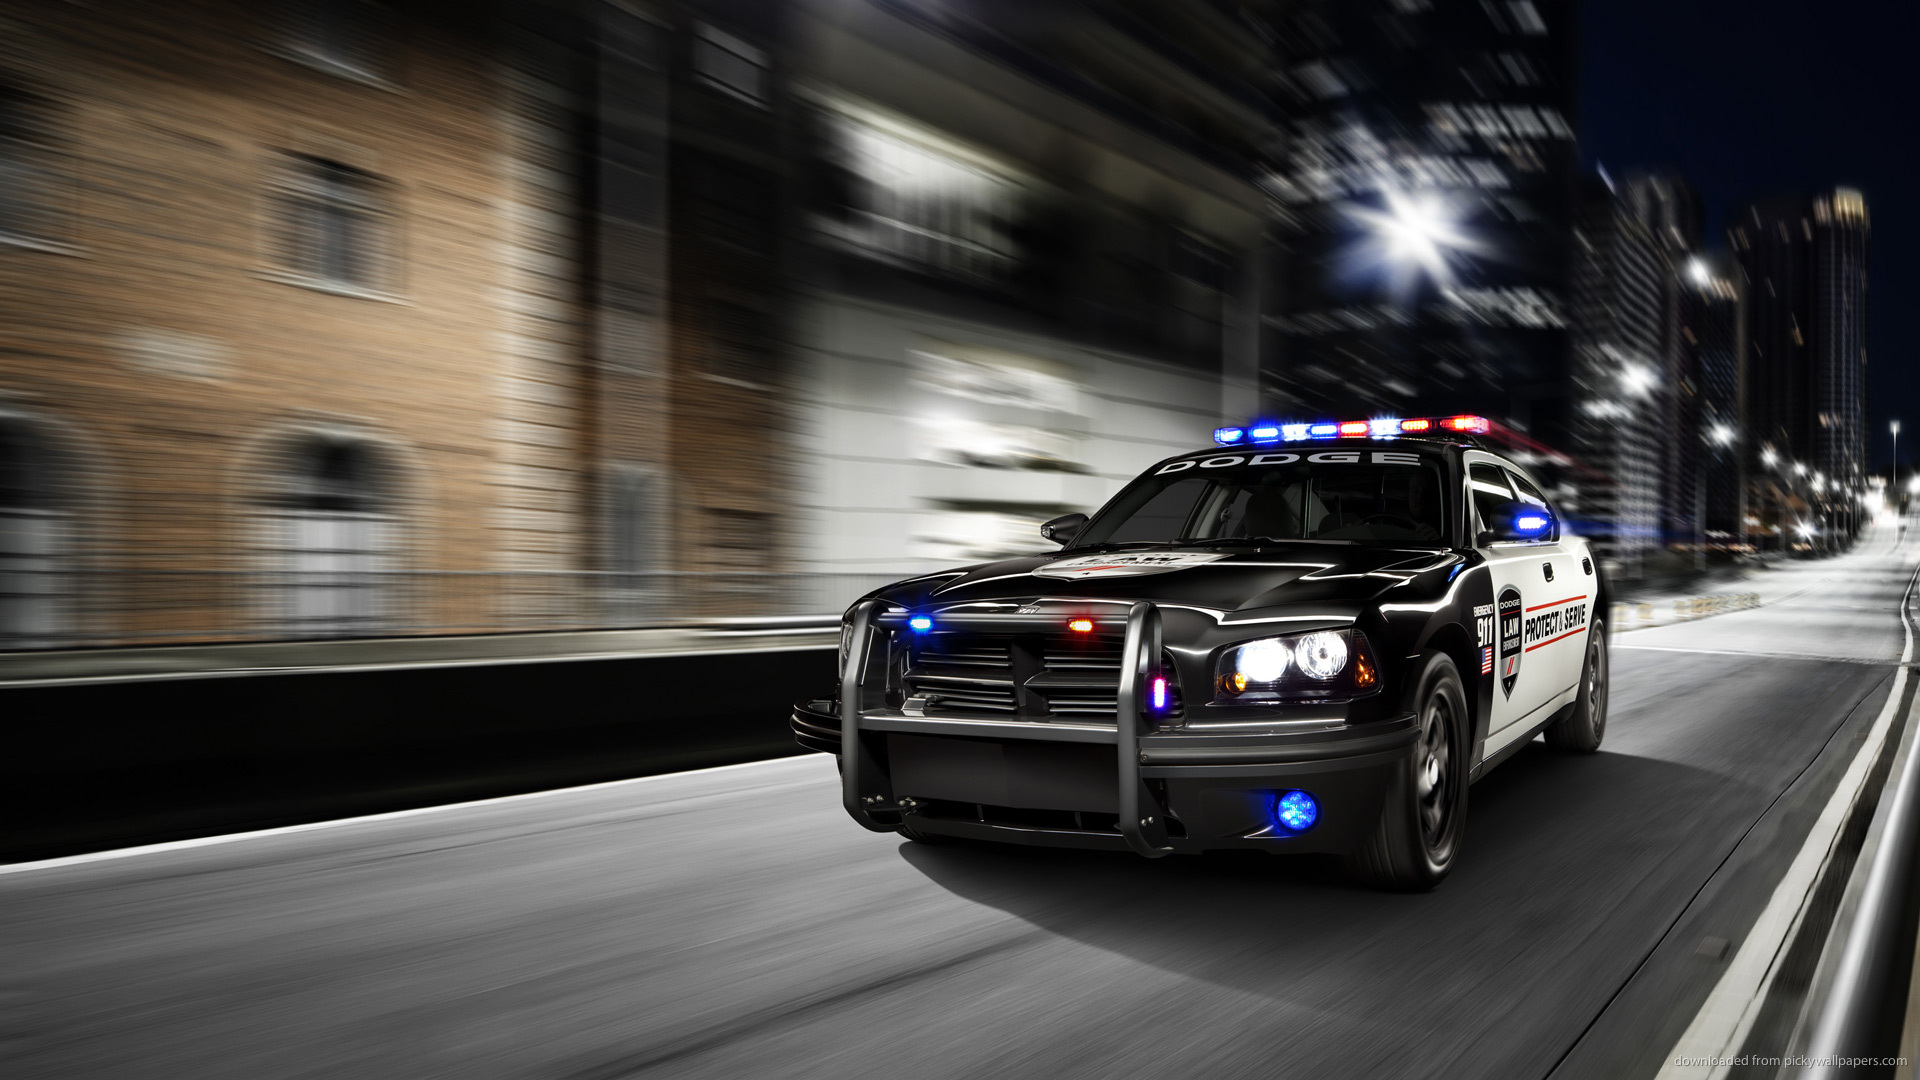 dodge police charger wallpapers twitter cars wallpaper 1920x1080